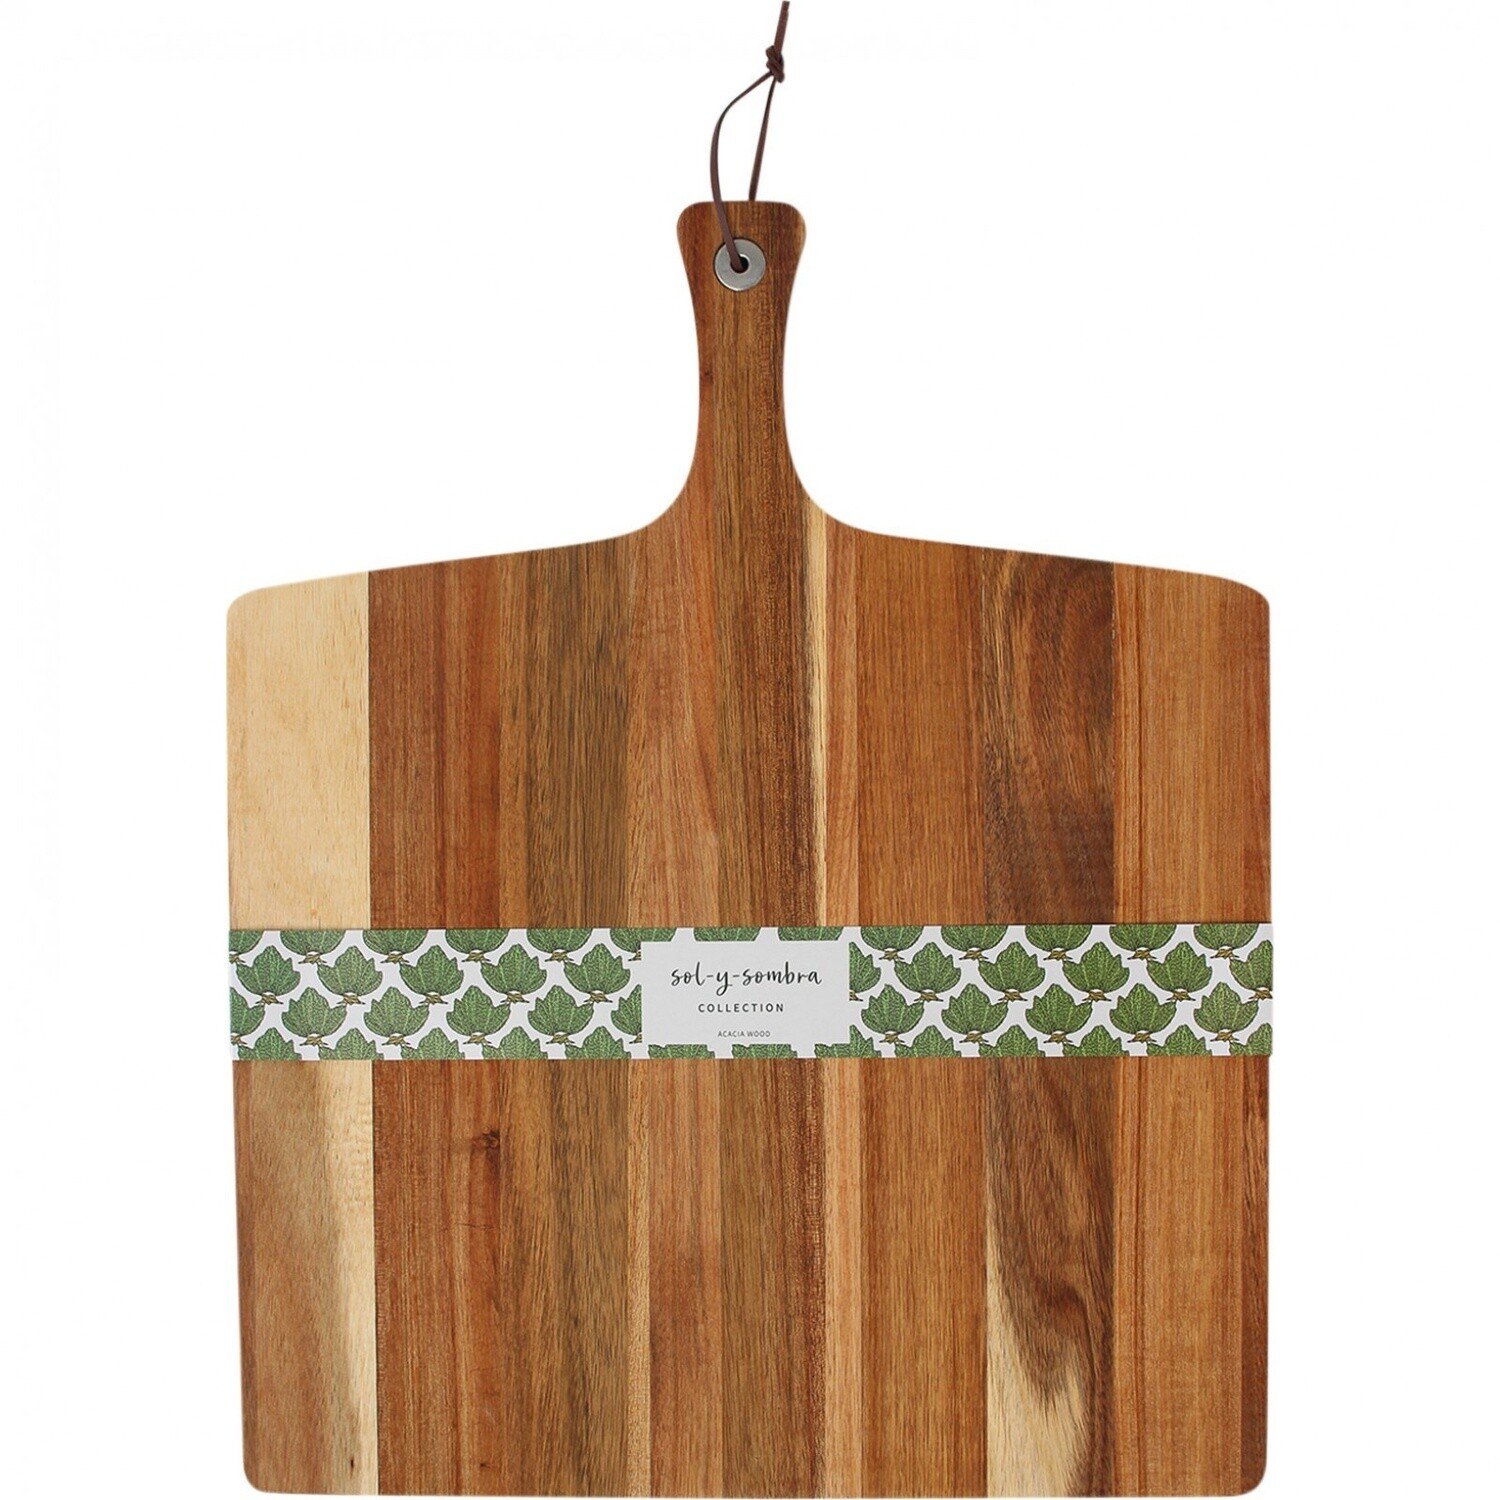 Serving Board Paddle XL